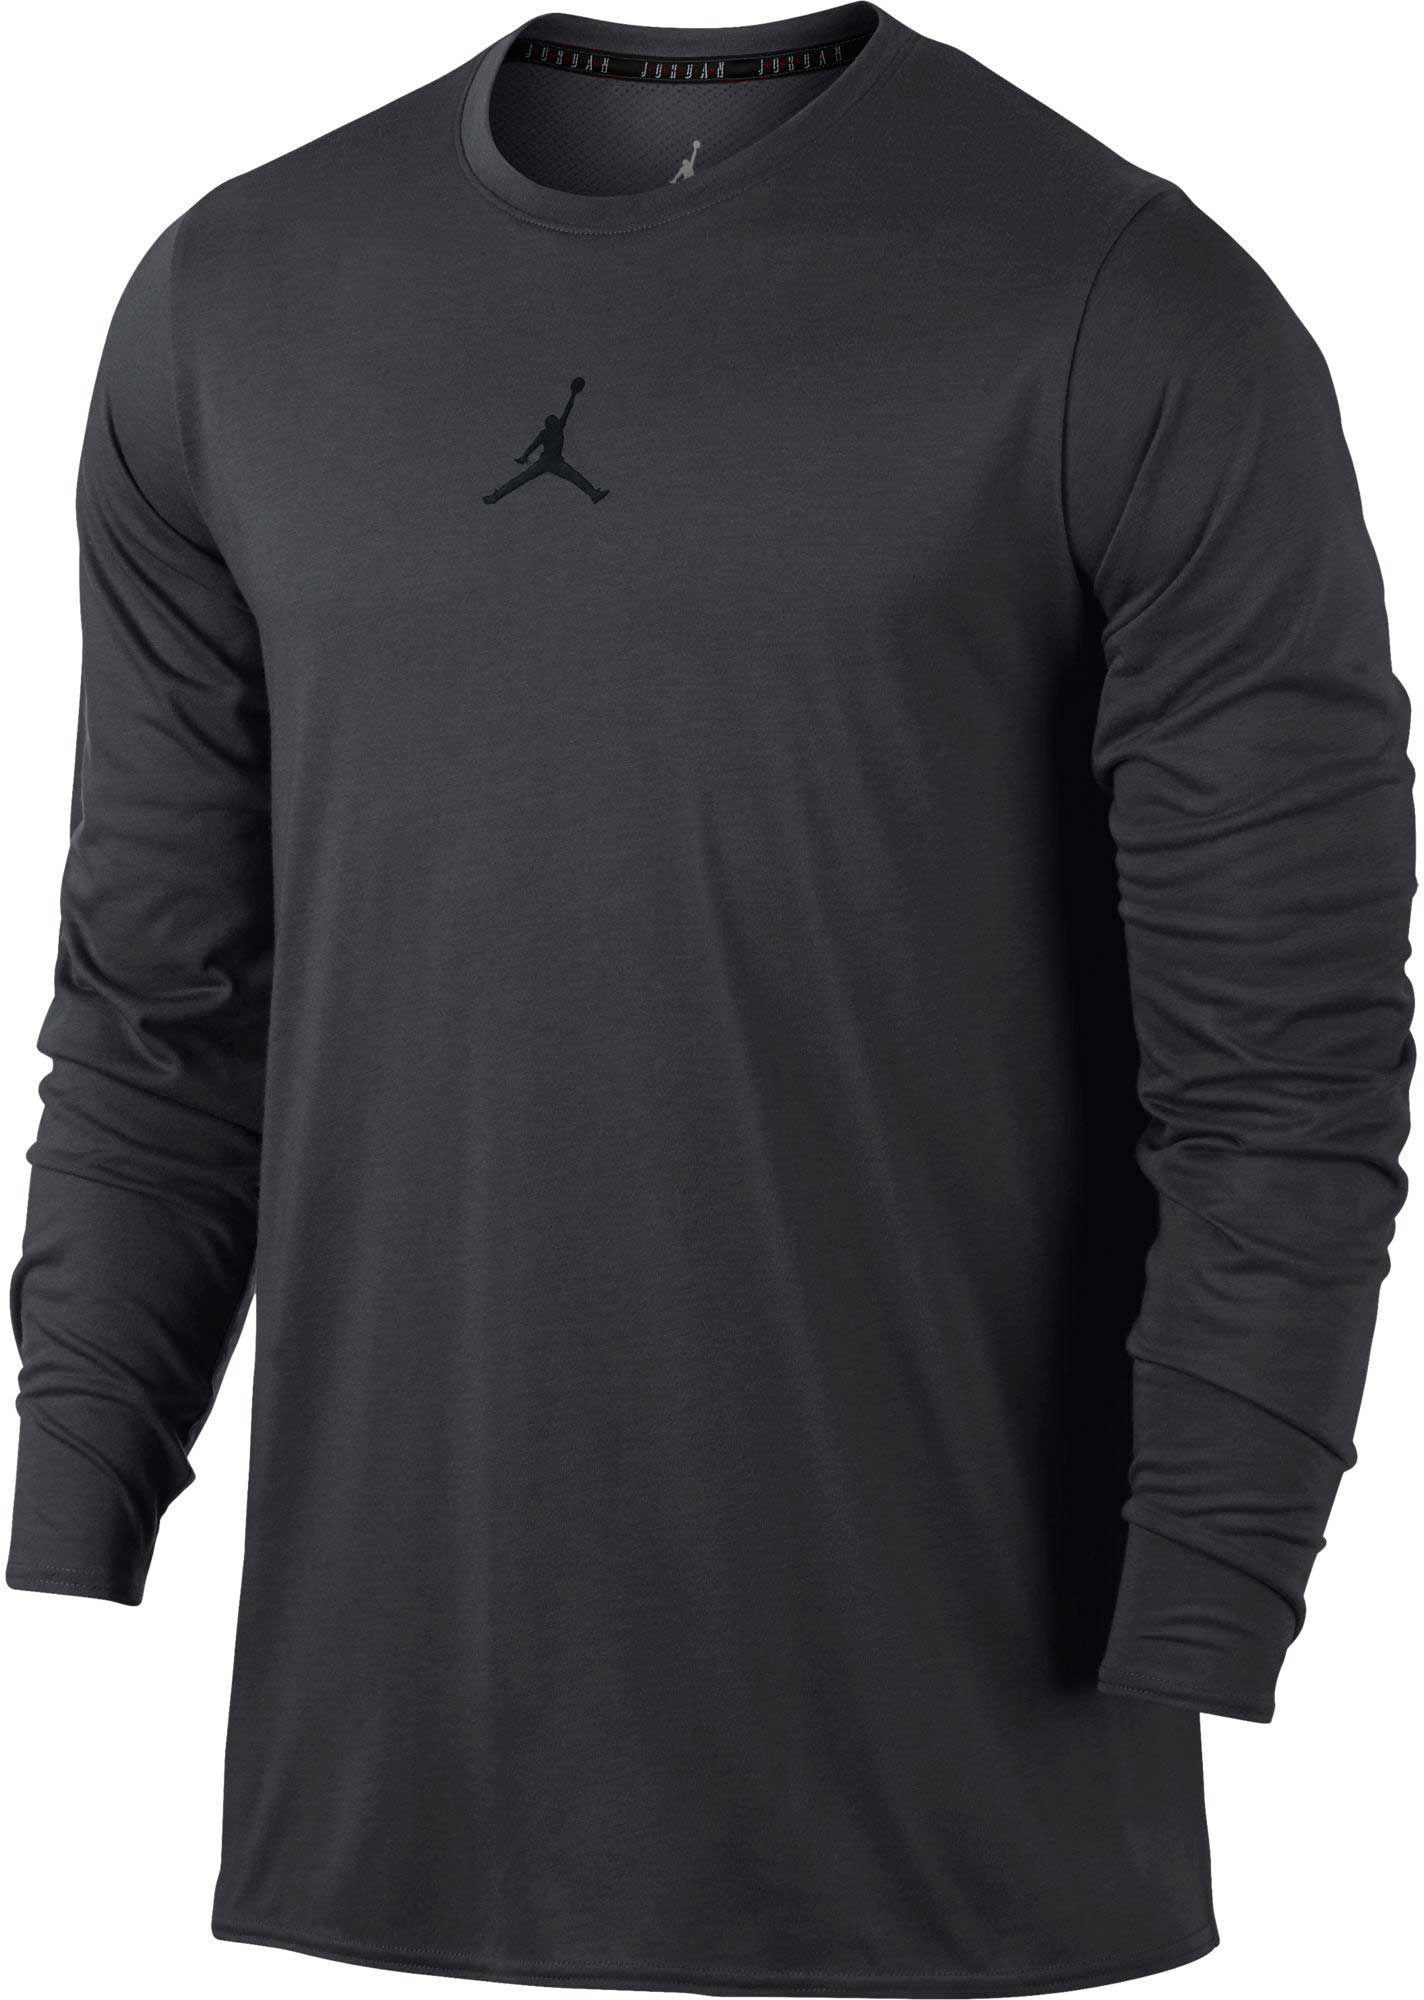 896f8cceab9e Lyst - Nike Jordan 23 Alpha Long Sleeve Shirt in Black for Men